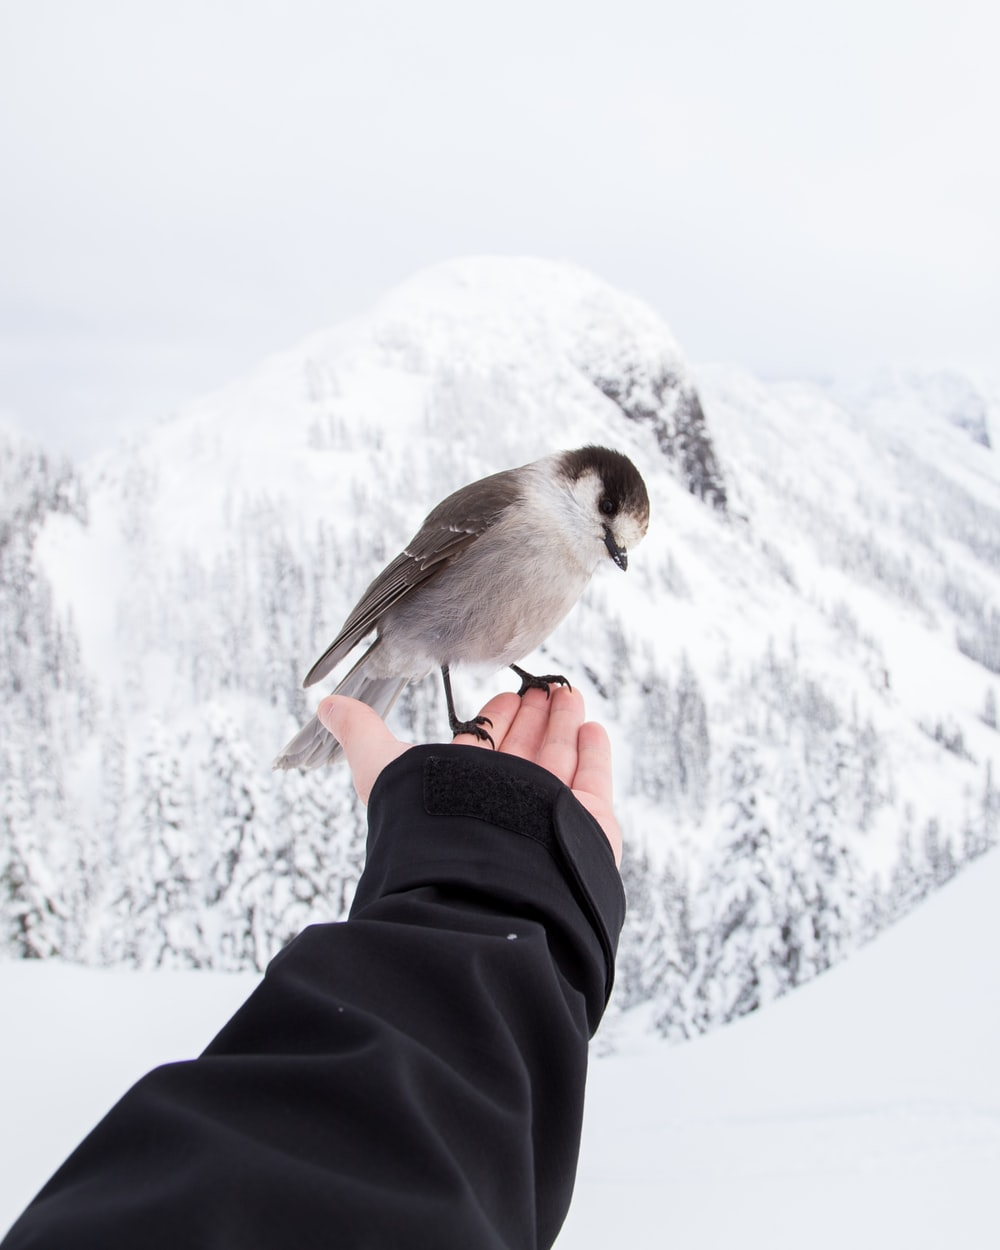 brown and white bird standing on left hand of person